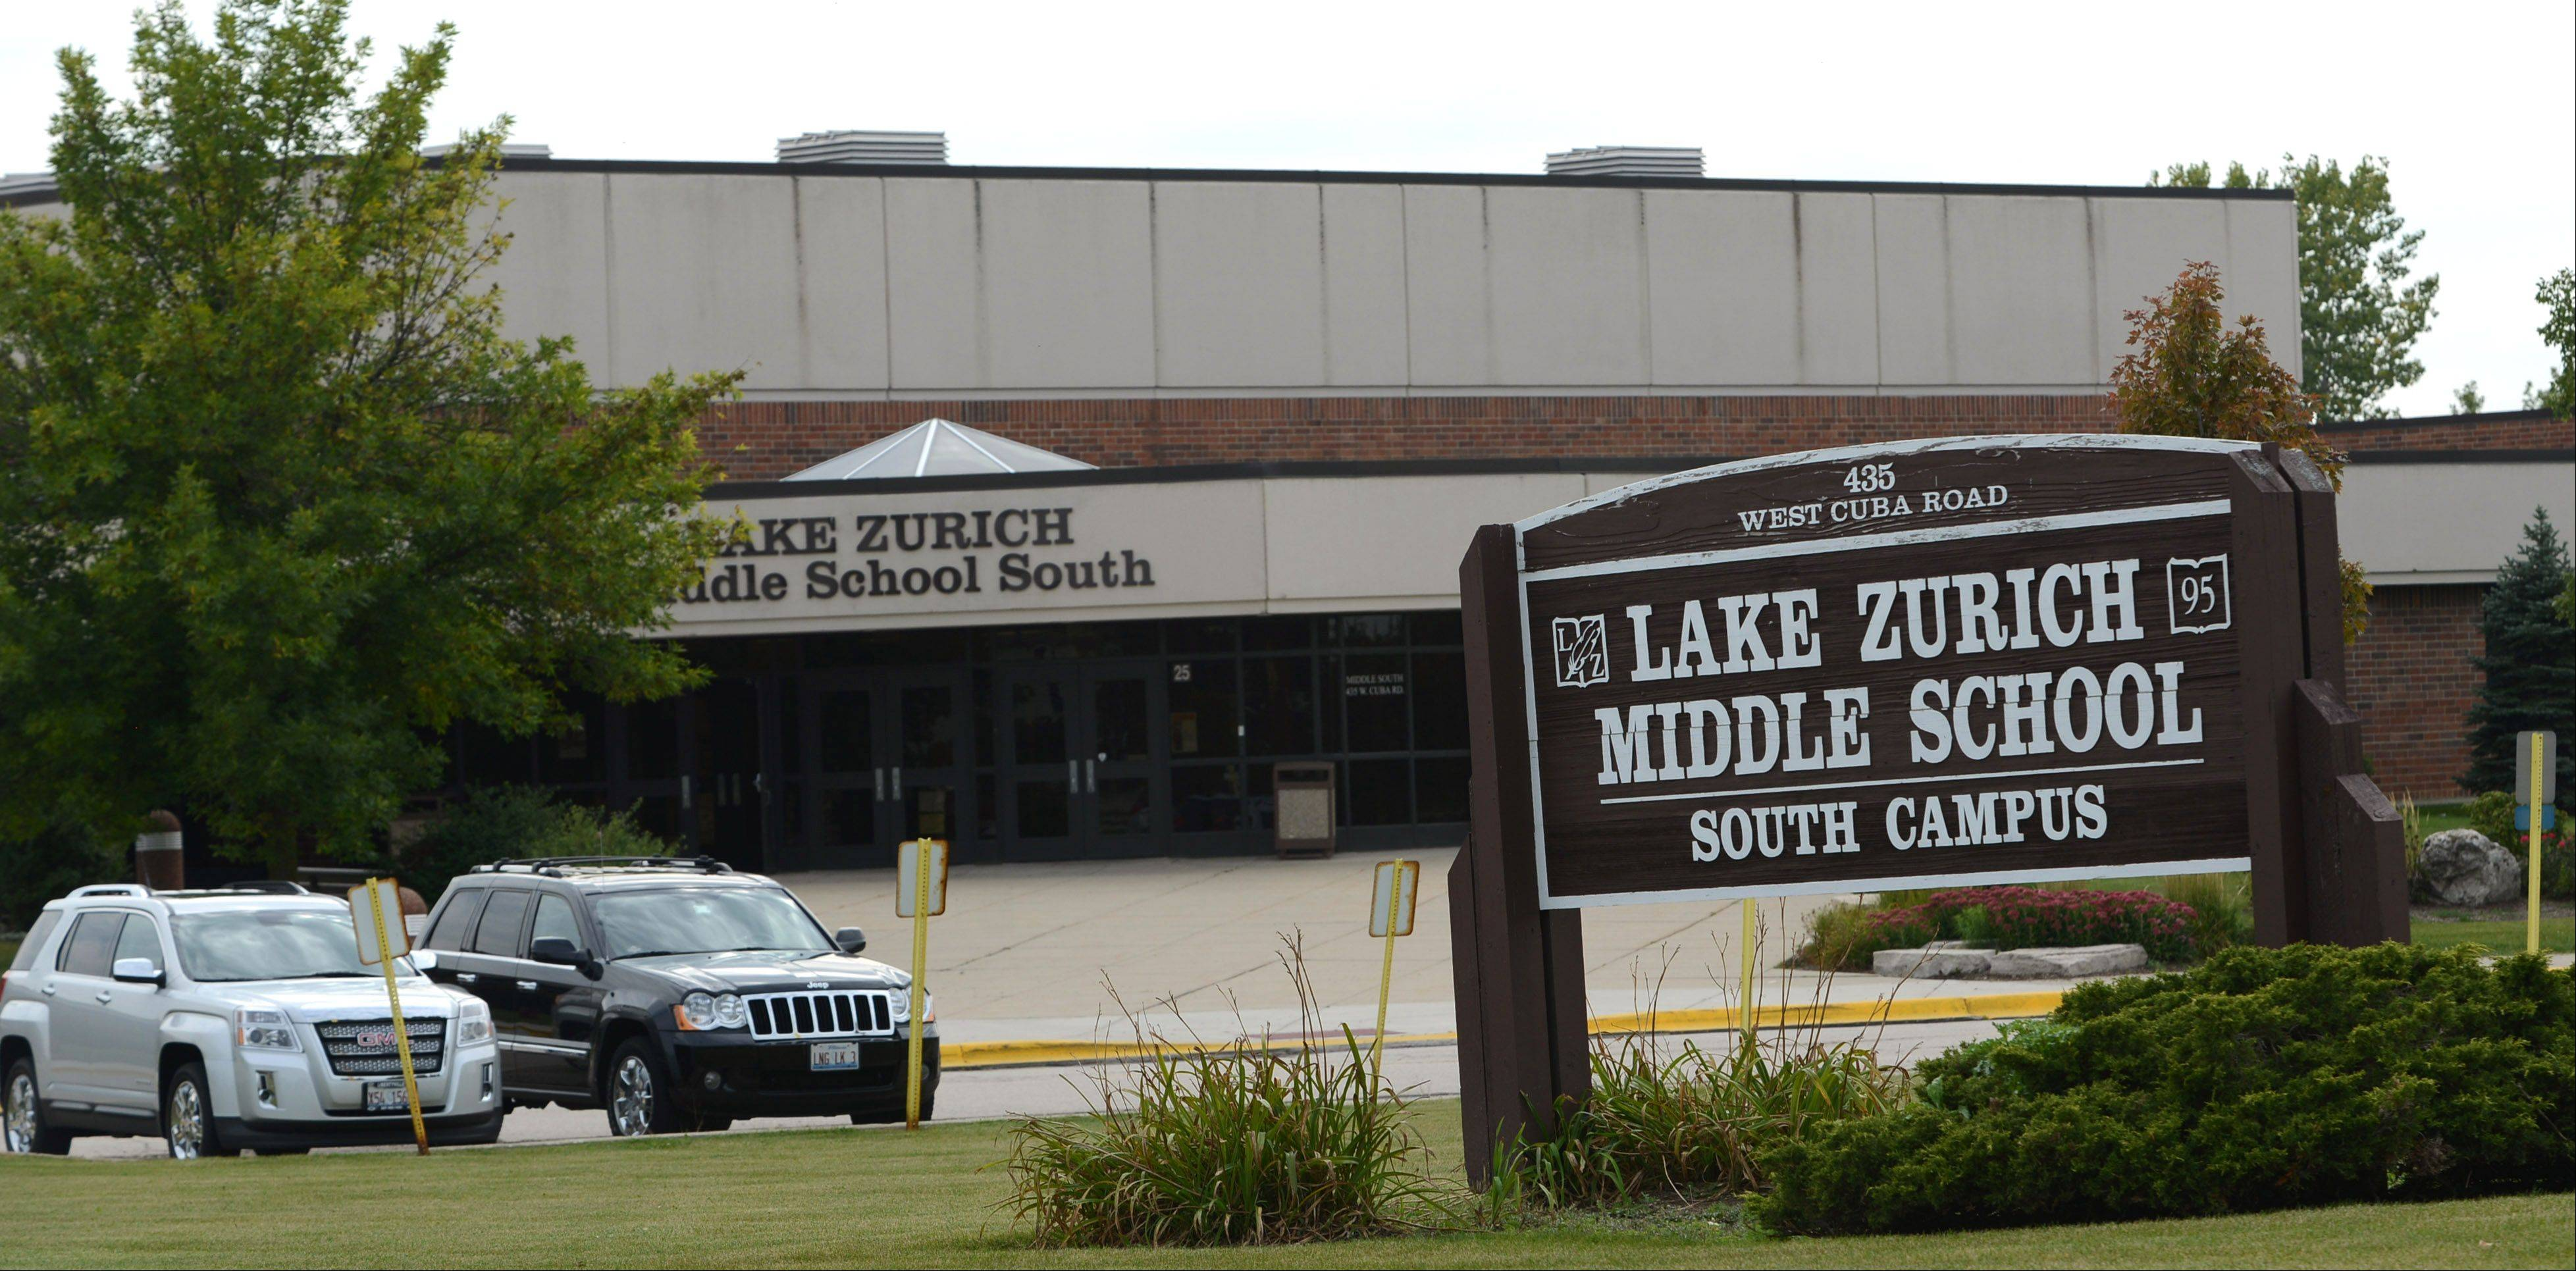 Lake Zurich Middle School South was locked down Tuesday after reports of a student with a weapon.